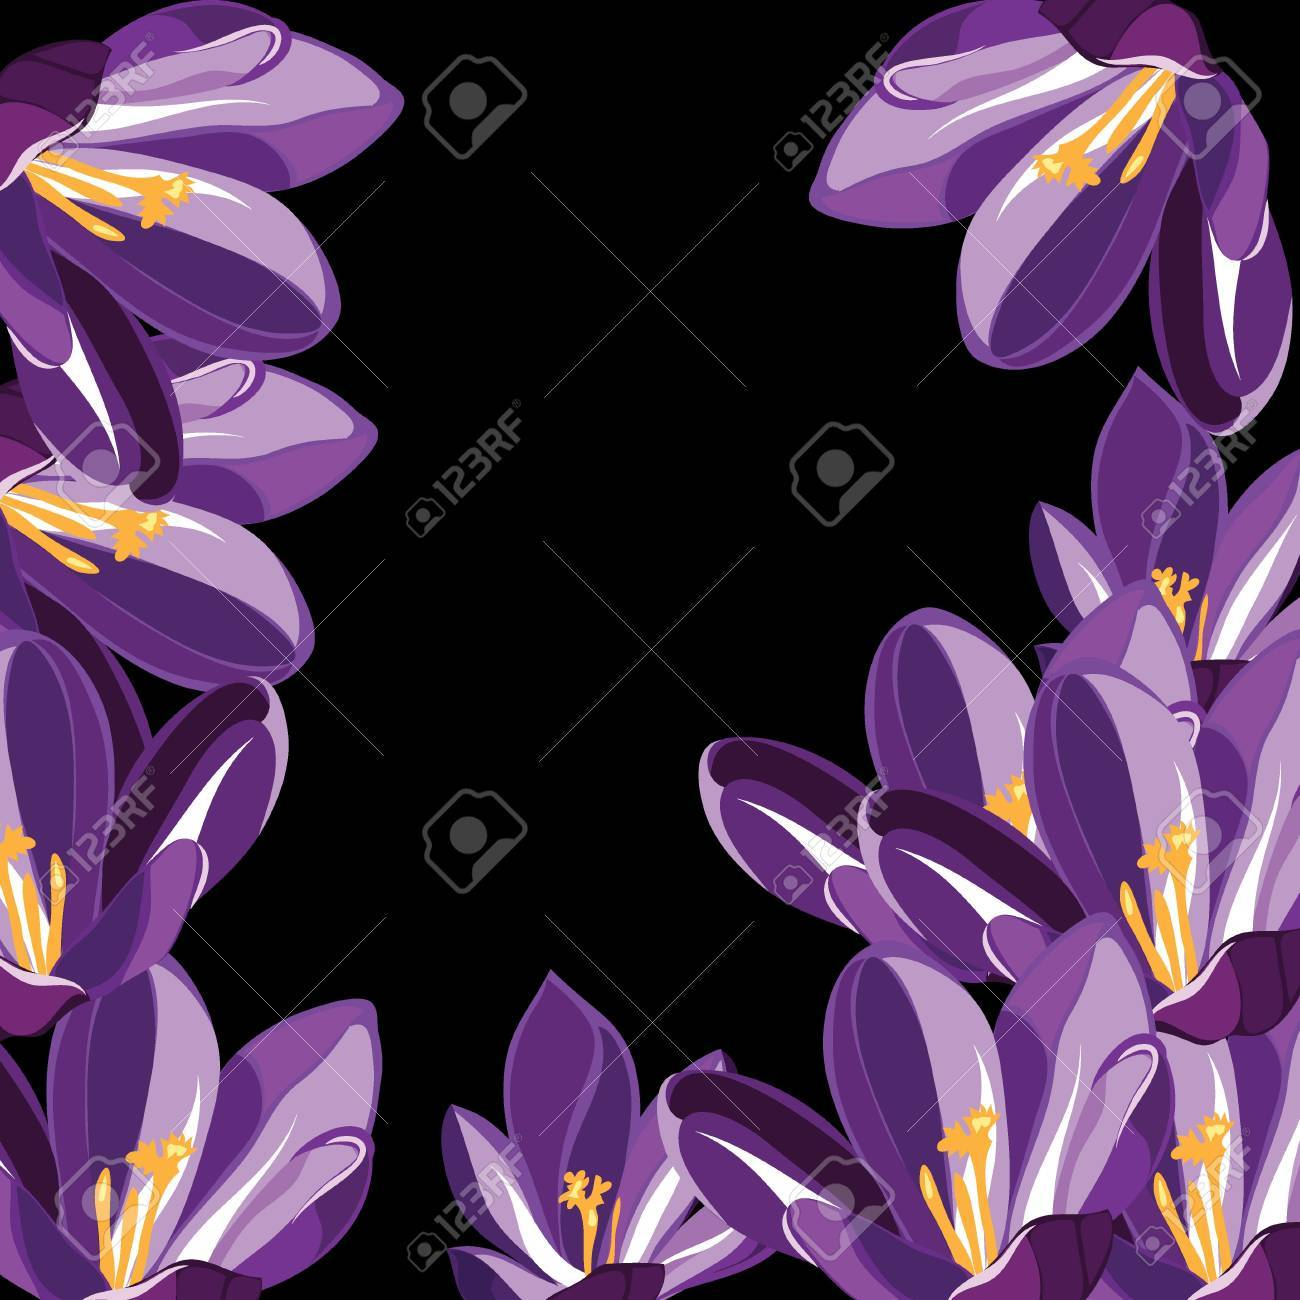 Floral pattern with crocus,  illustration. Stock Vector - 18528098